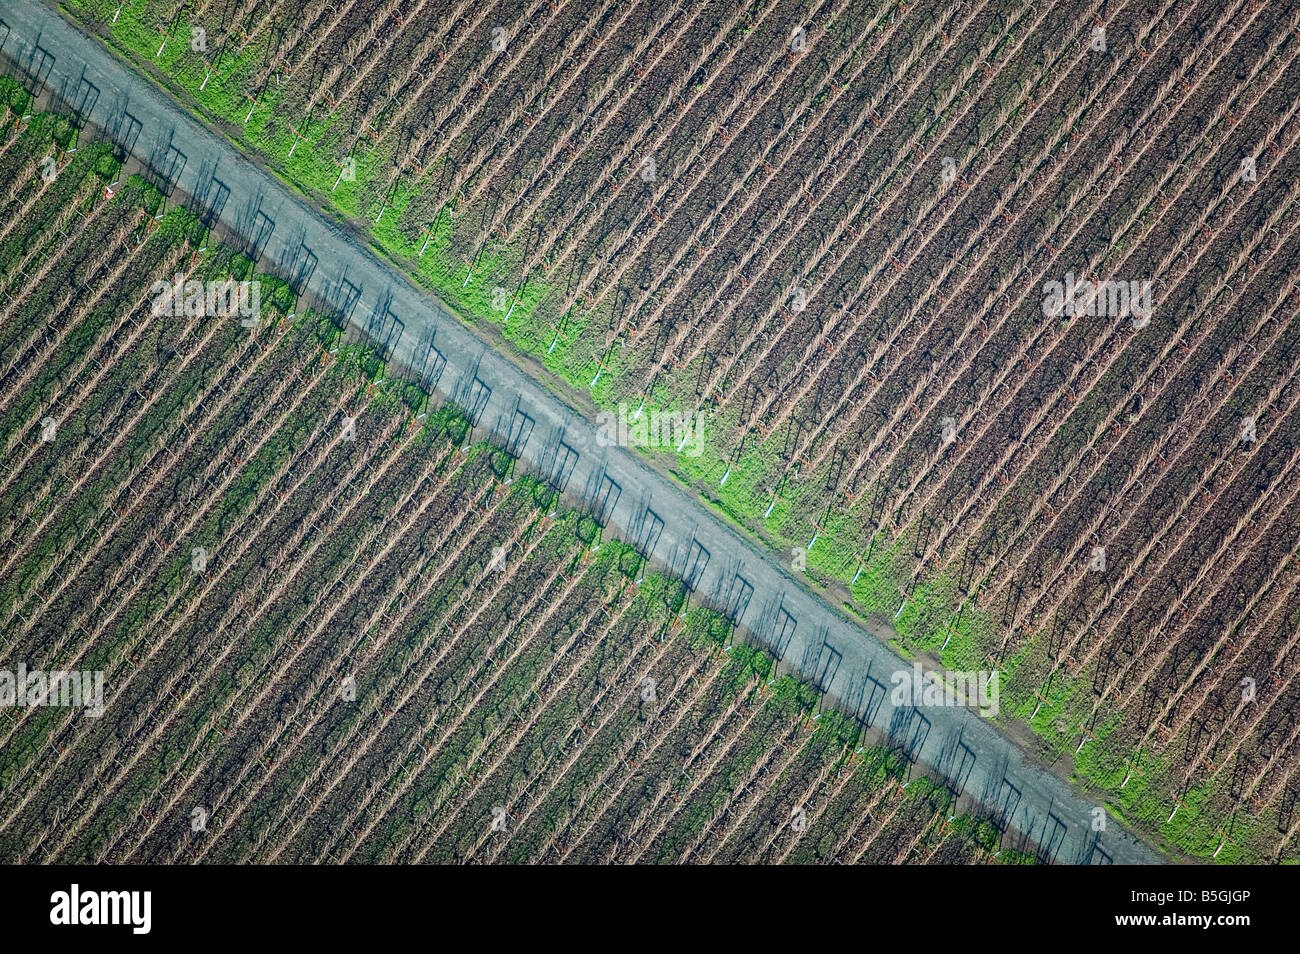 aerial view above diagonal vineyard rows at maintenance road in Sonoma California wine region - Stock Image